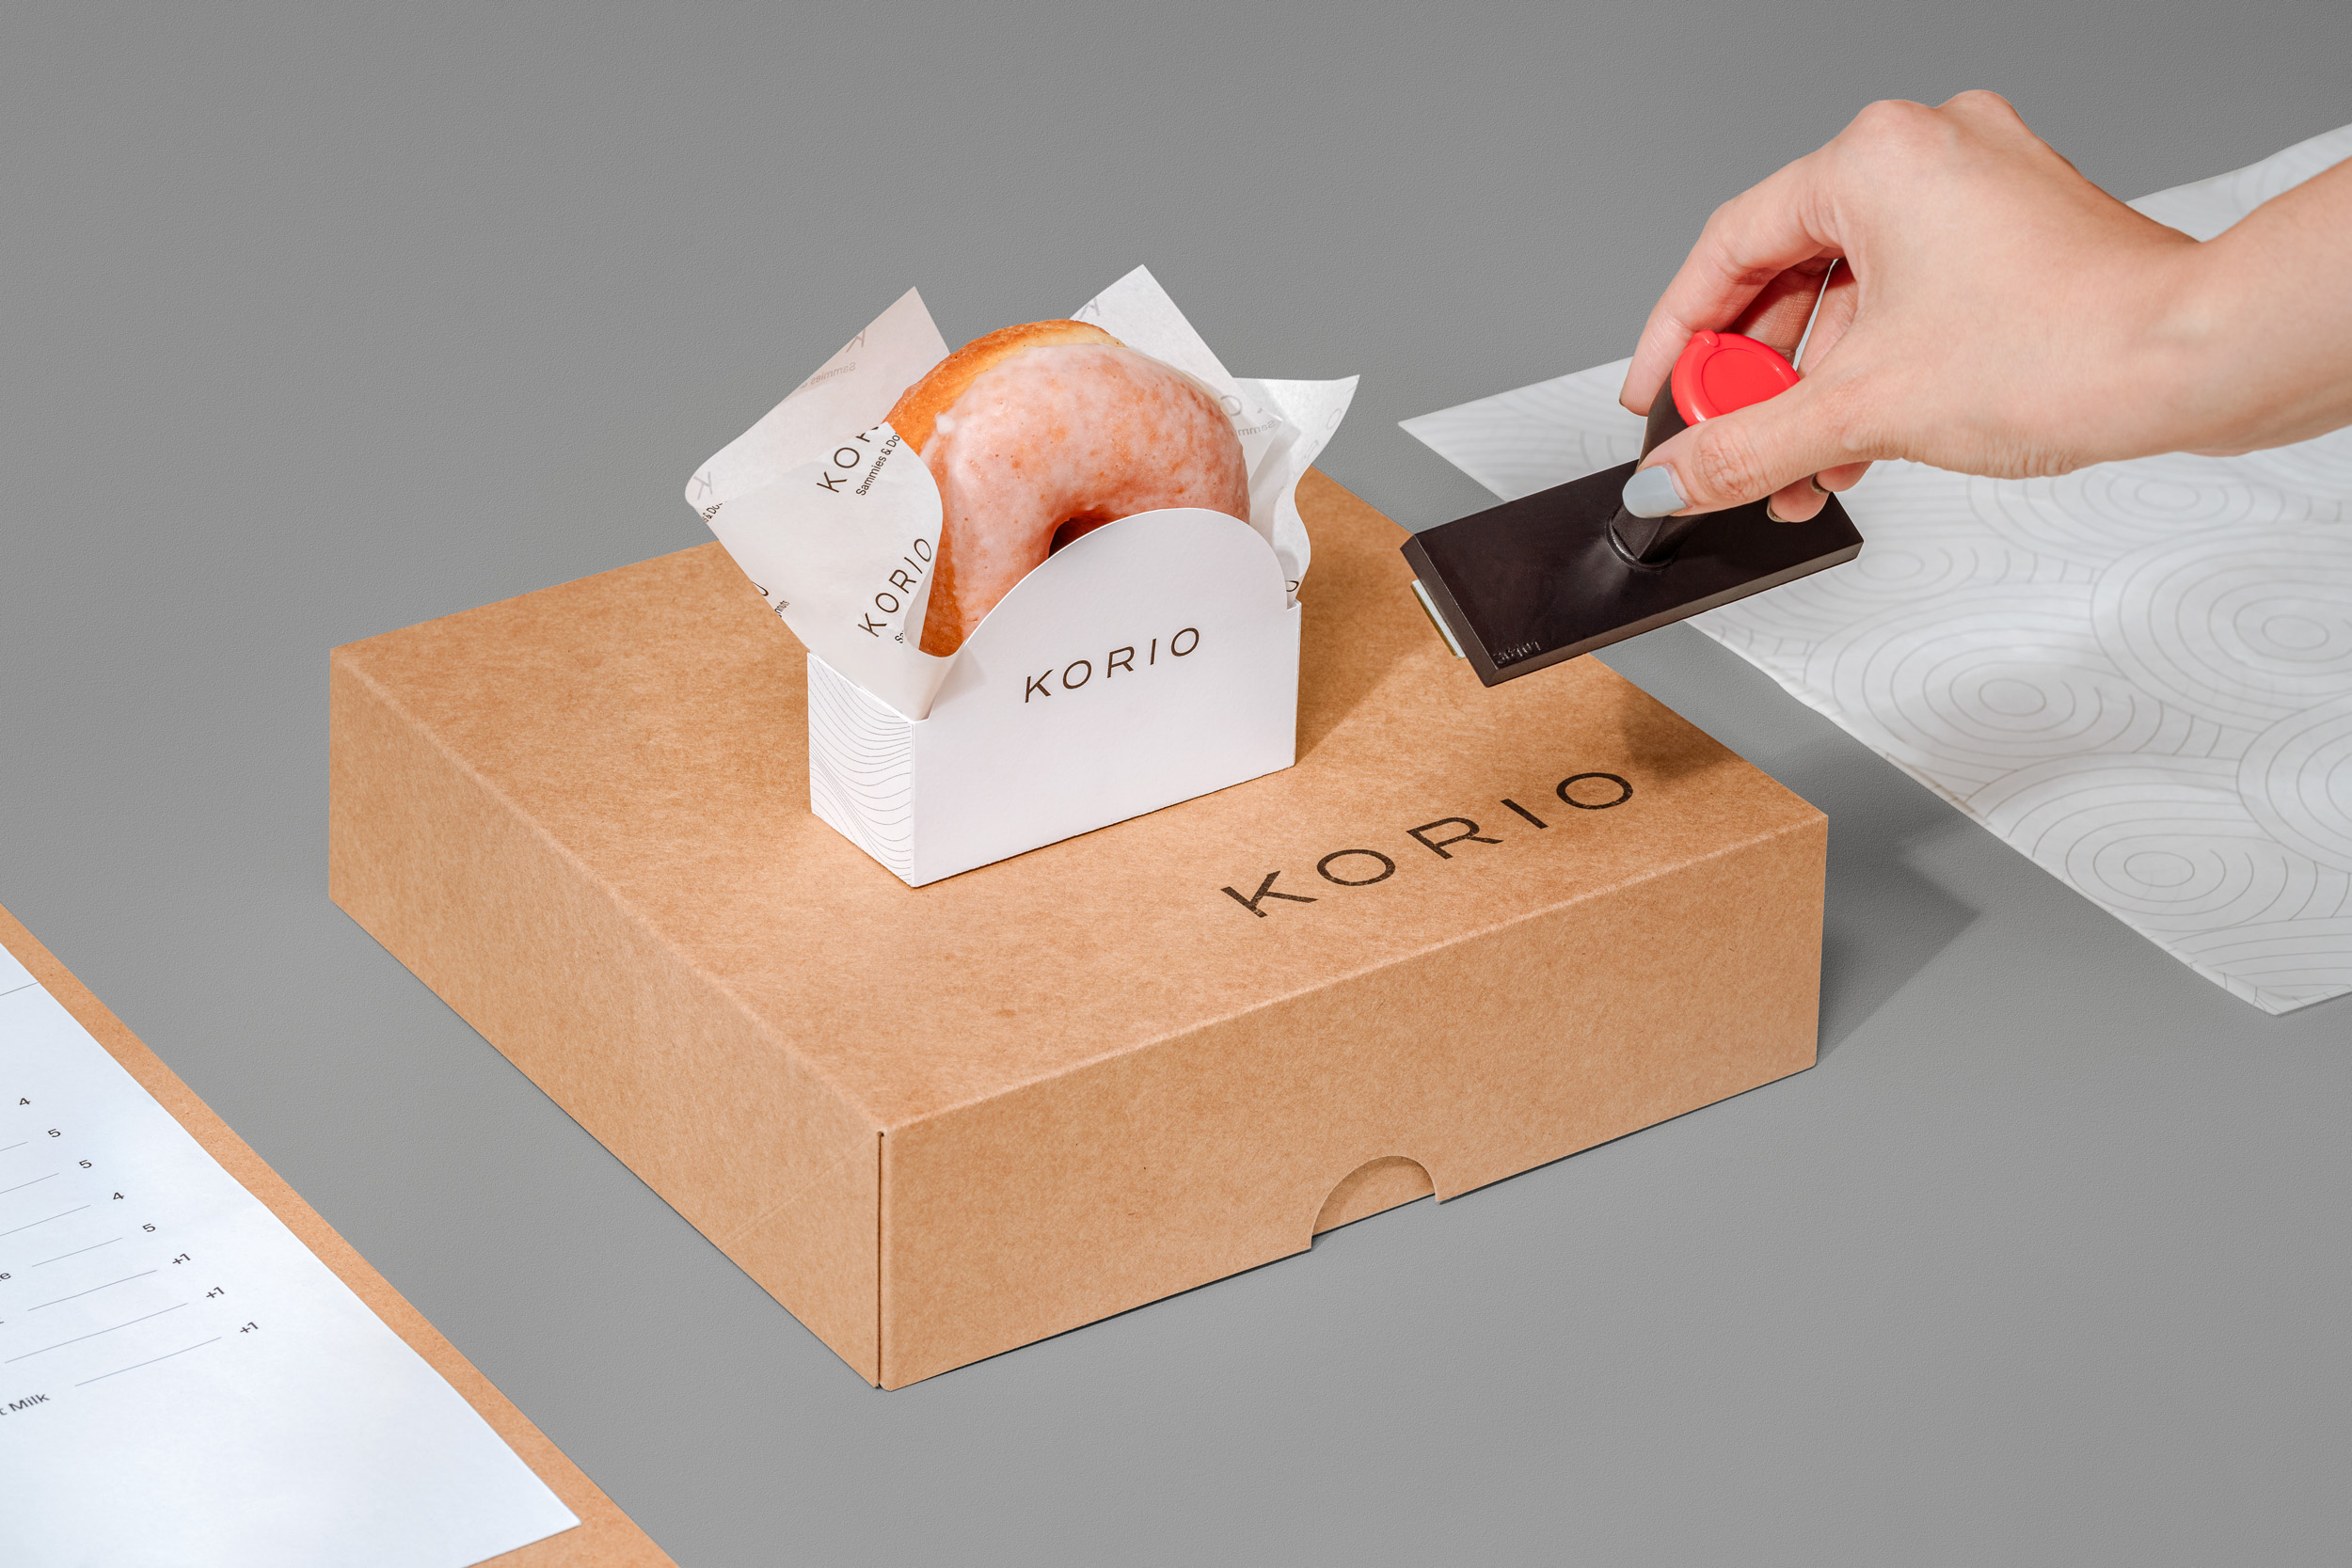 Korio Branding by Fable